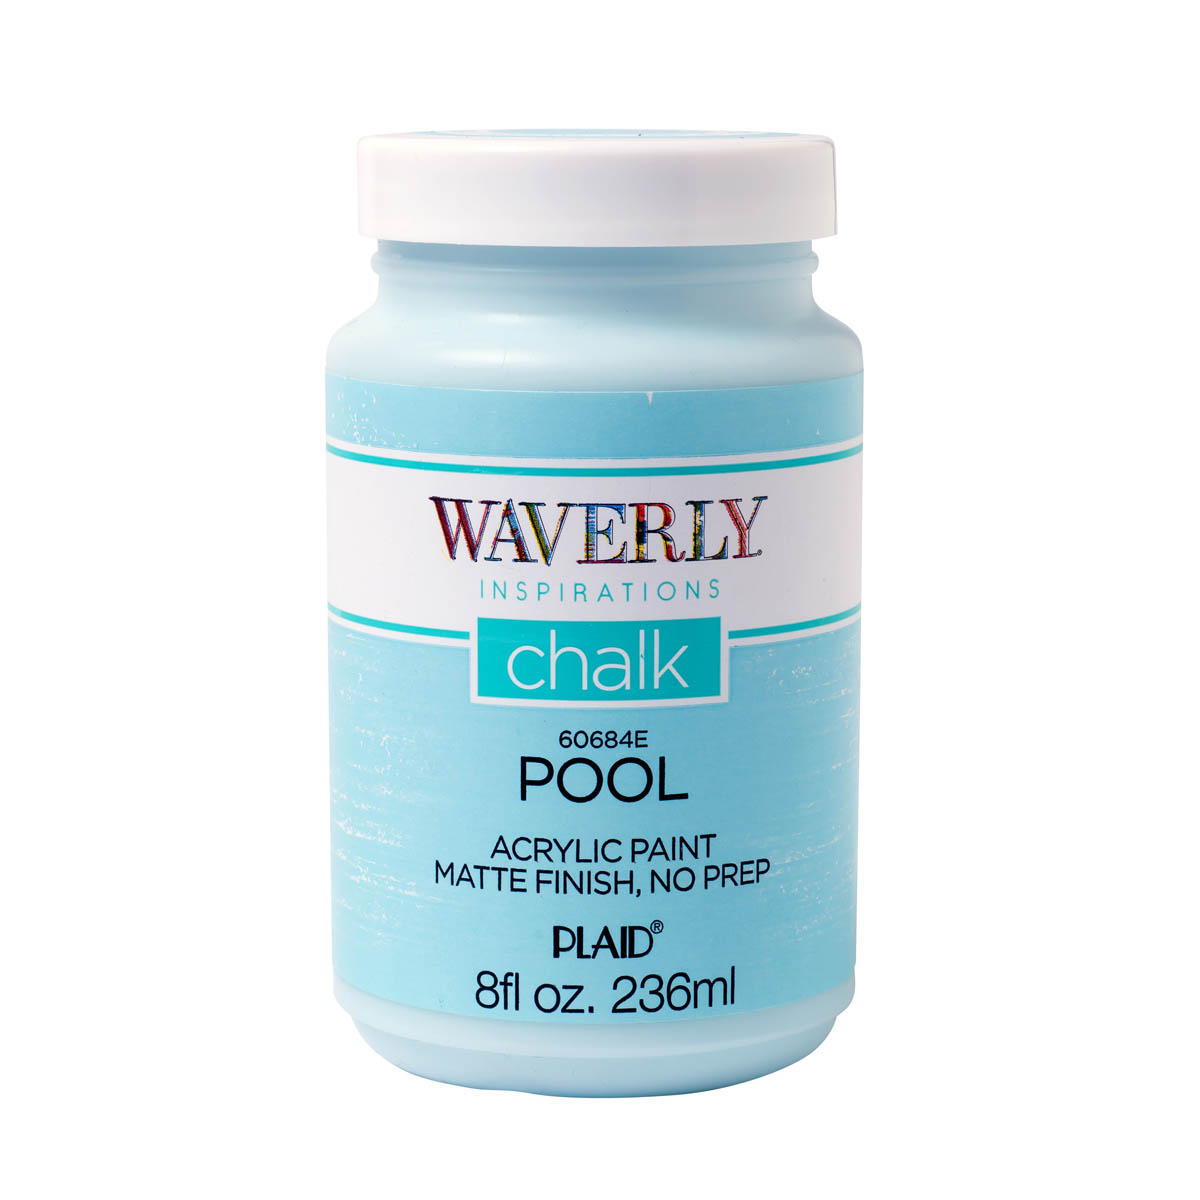 Waverly ® Inspirations Chalk Acrylic Paint - Pool, 8 oz.